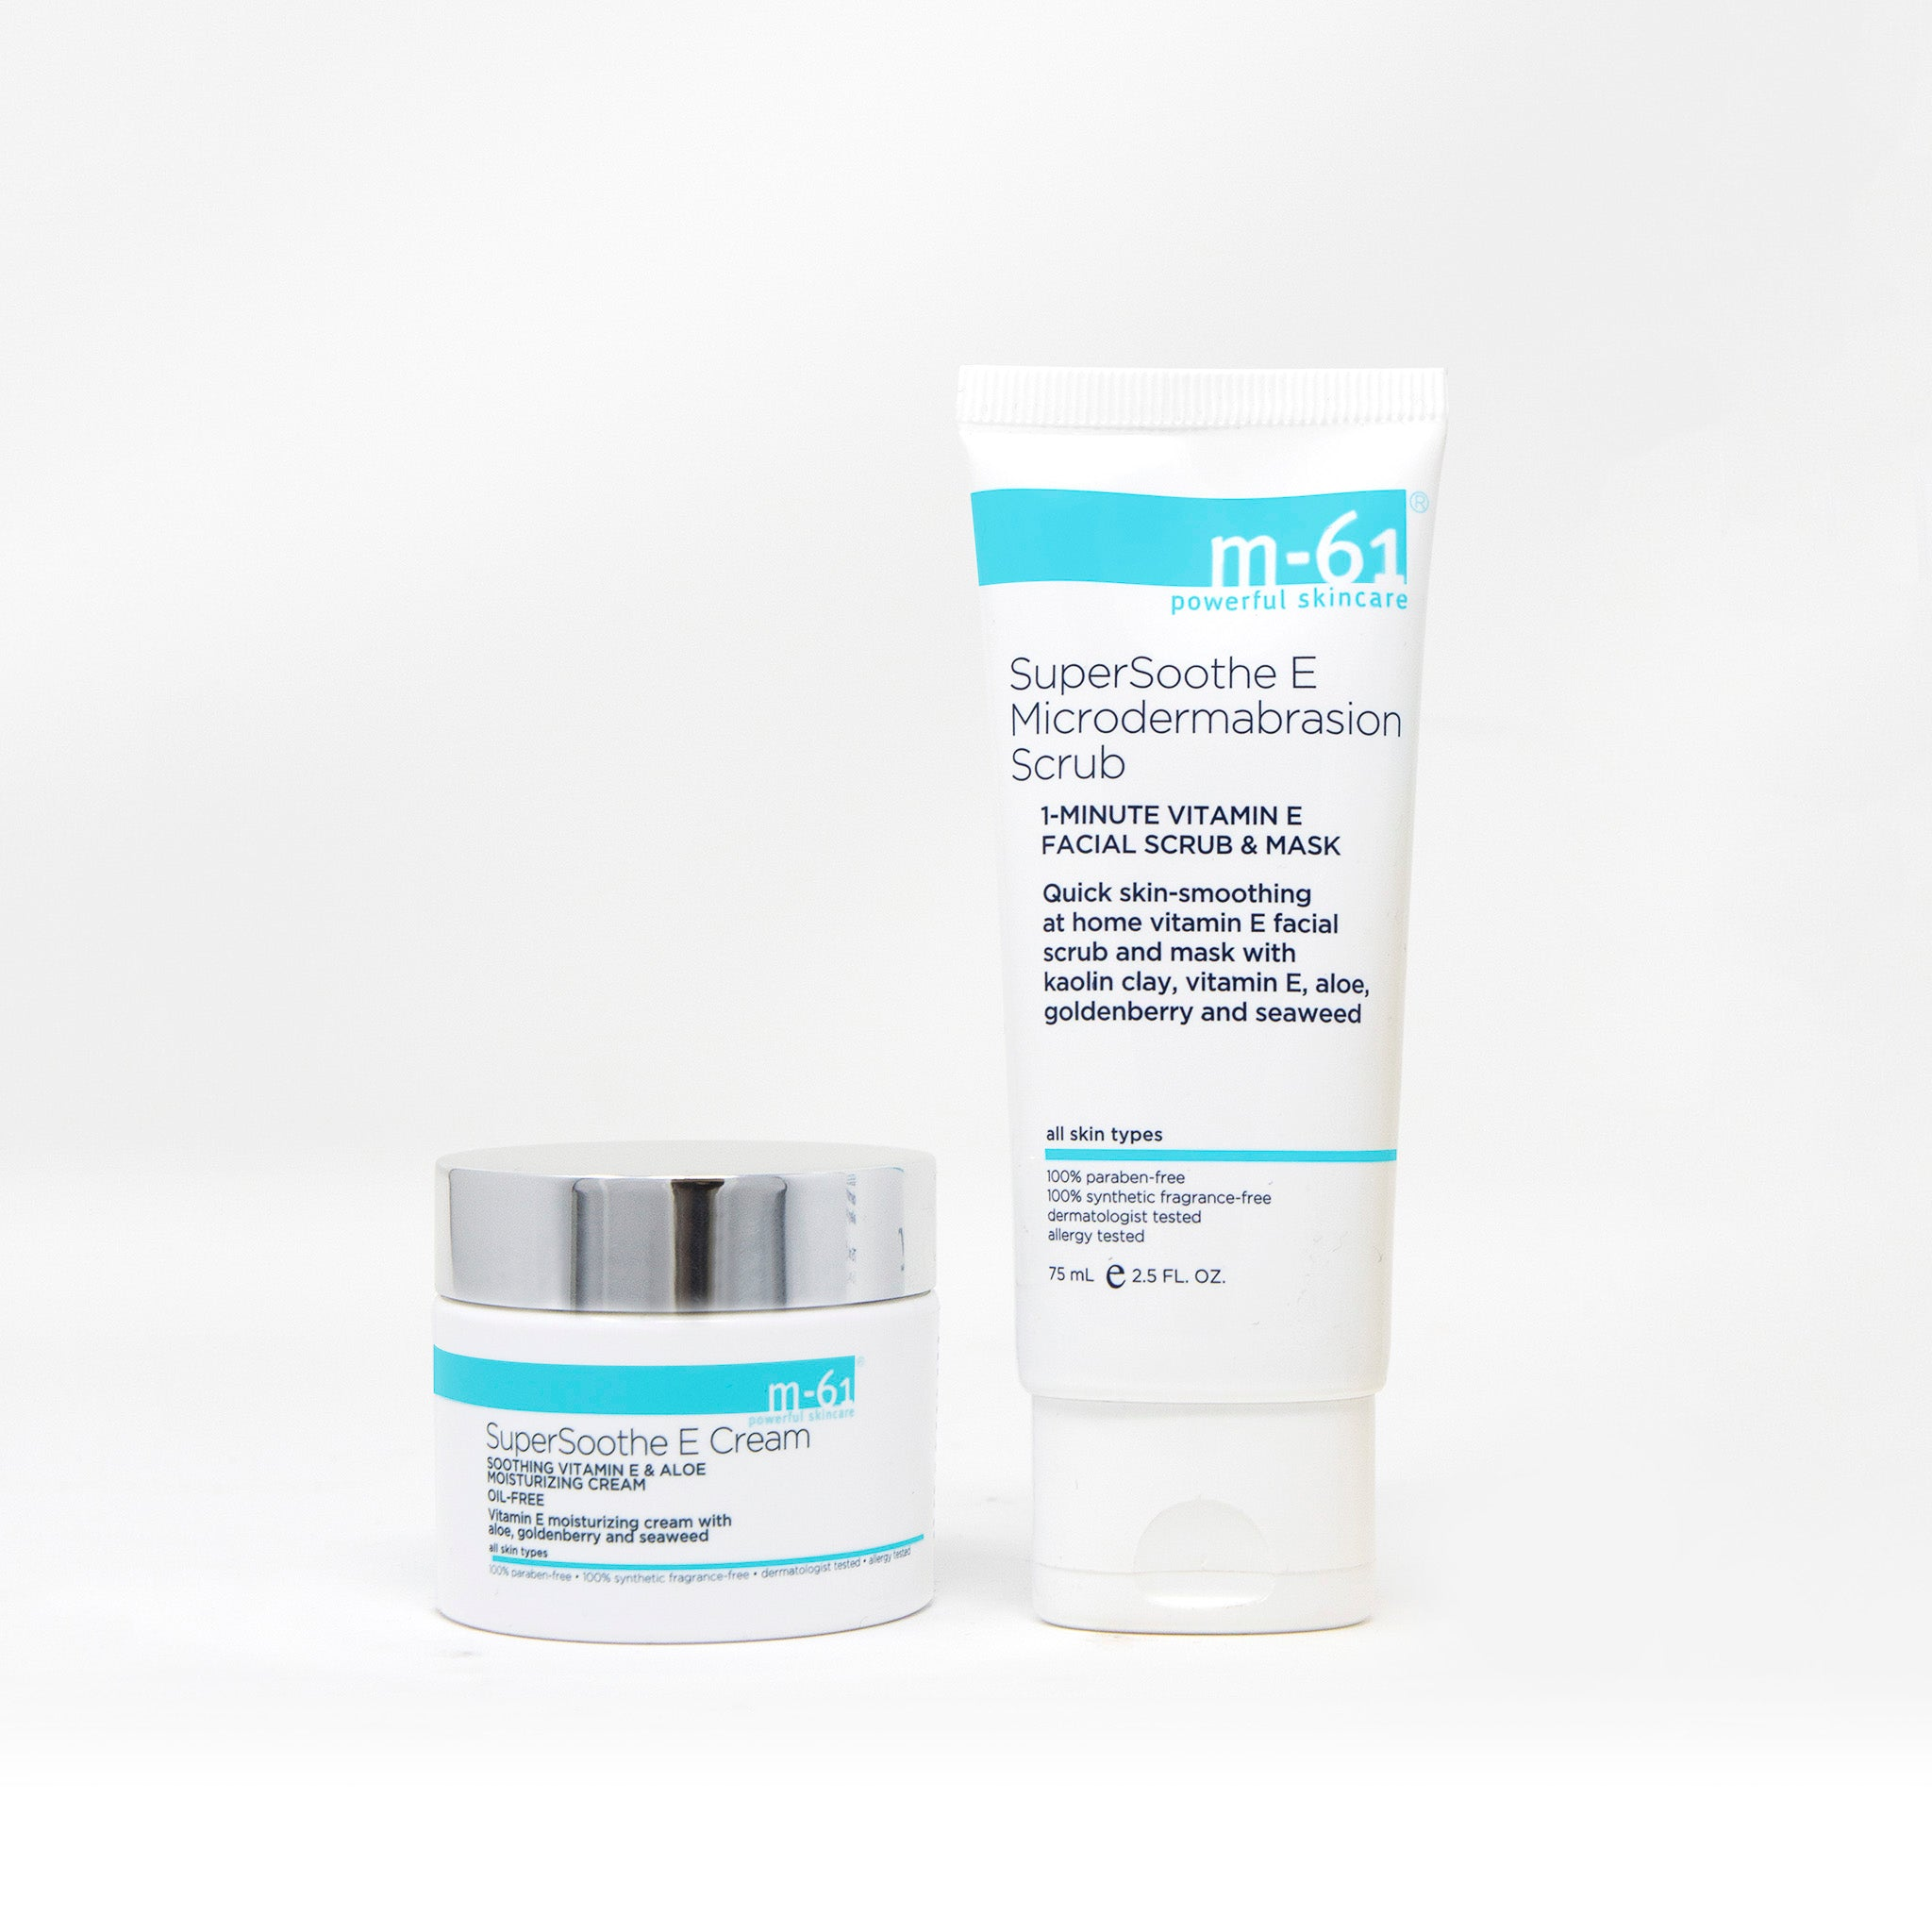 The SuperSoothe Collection